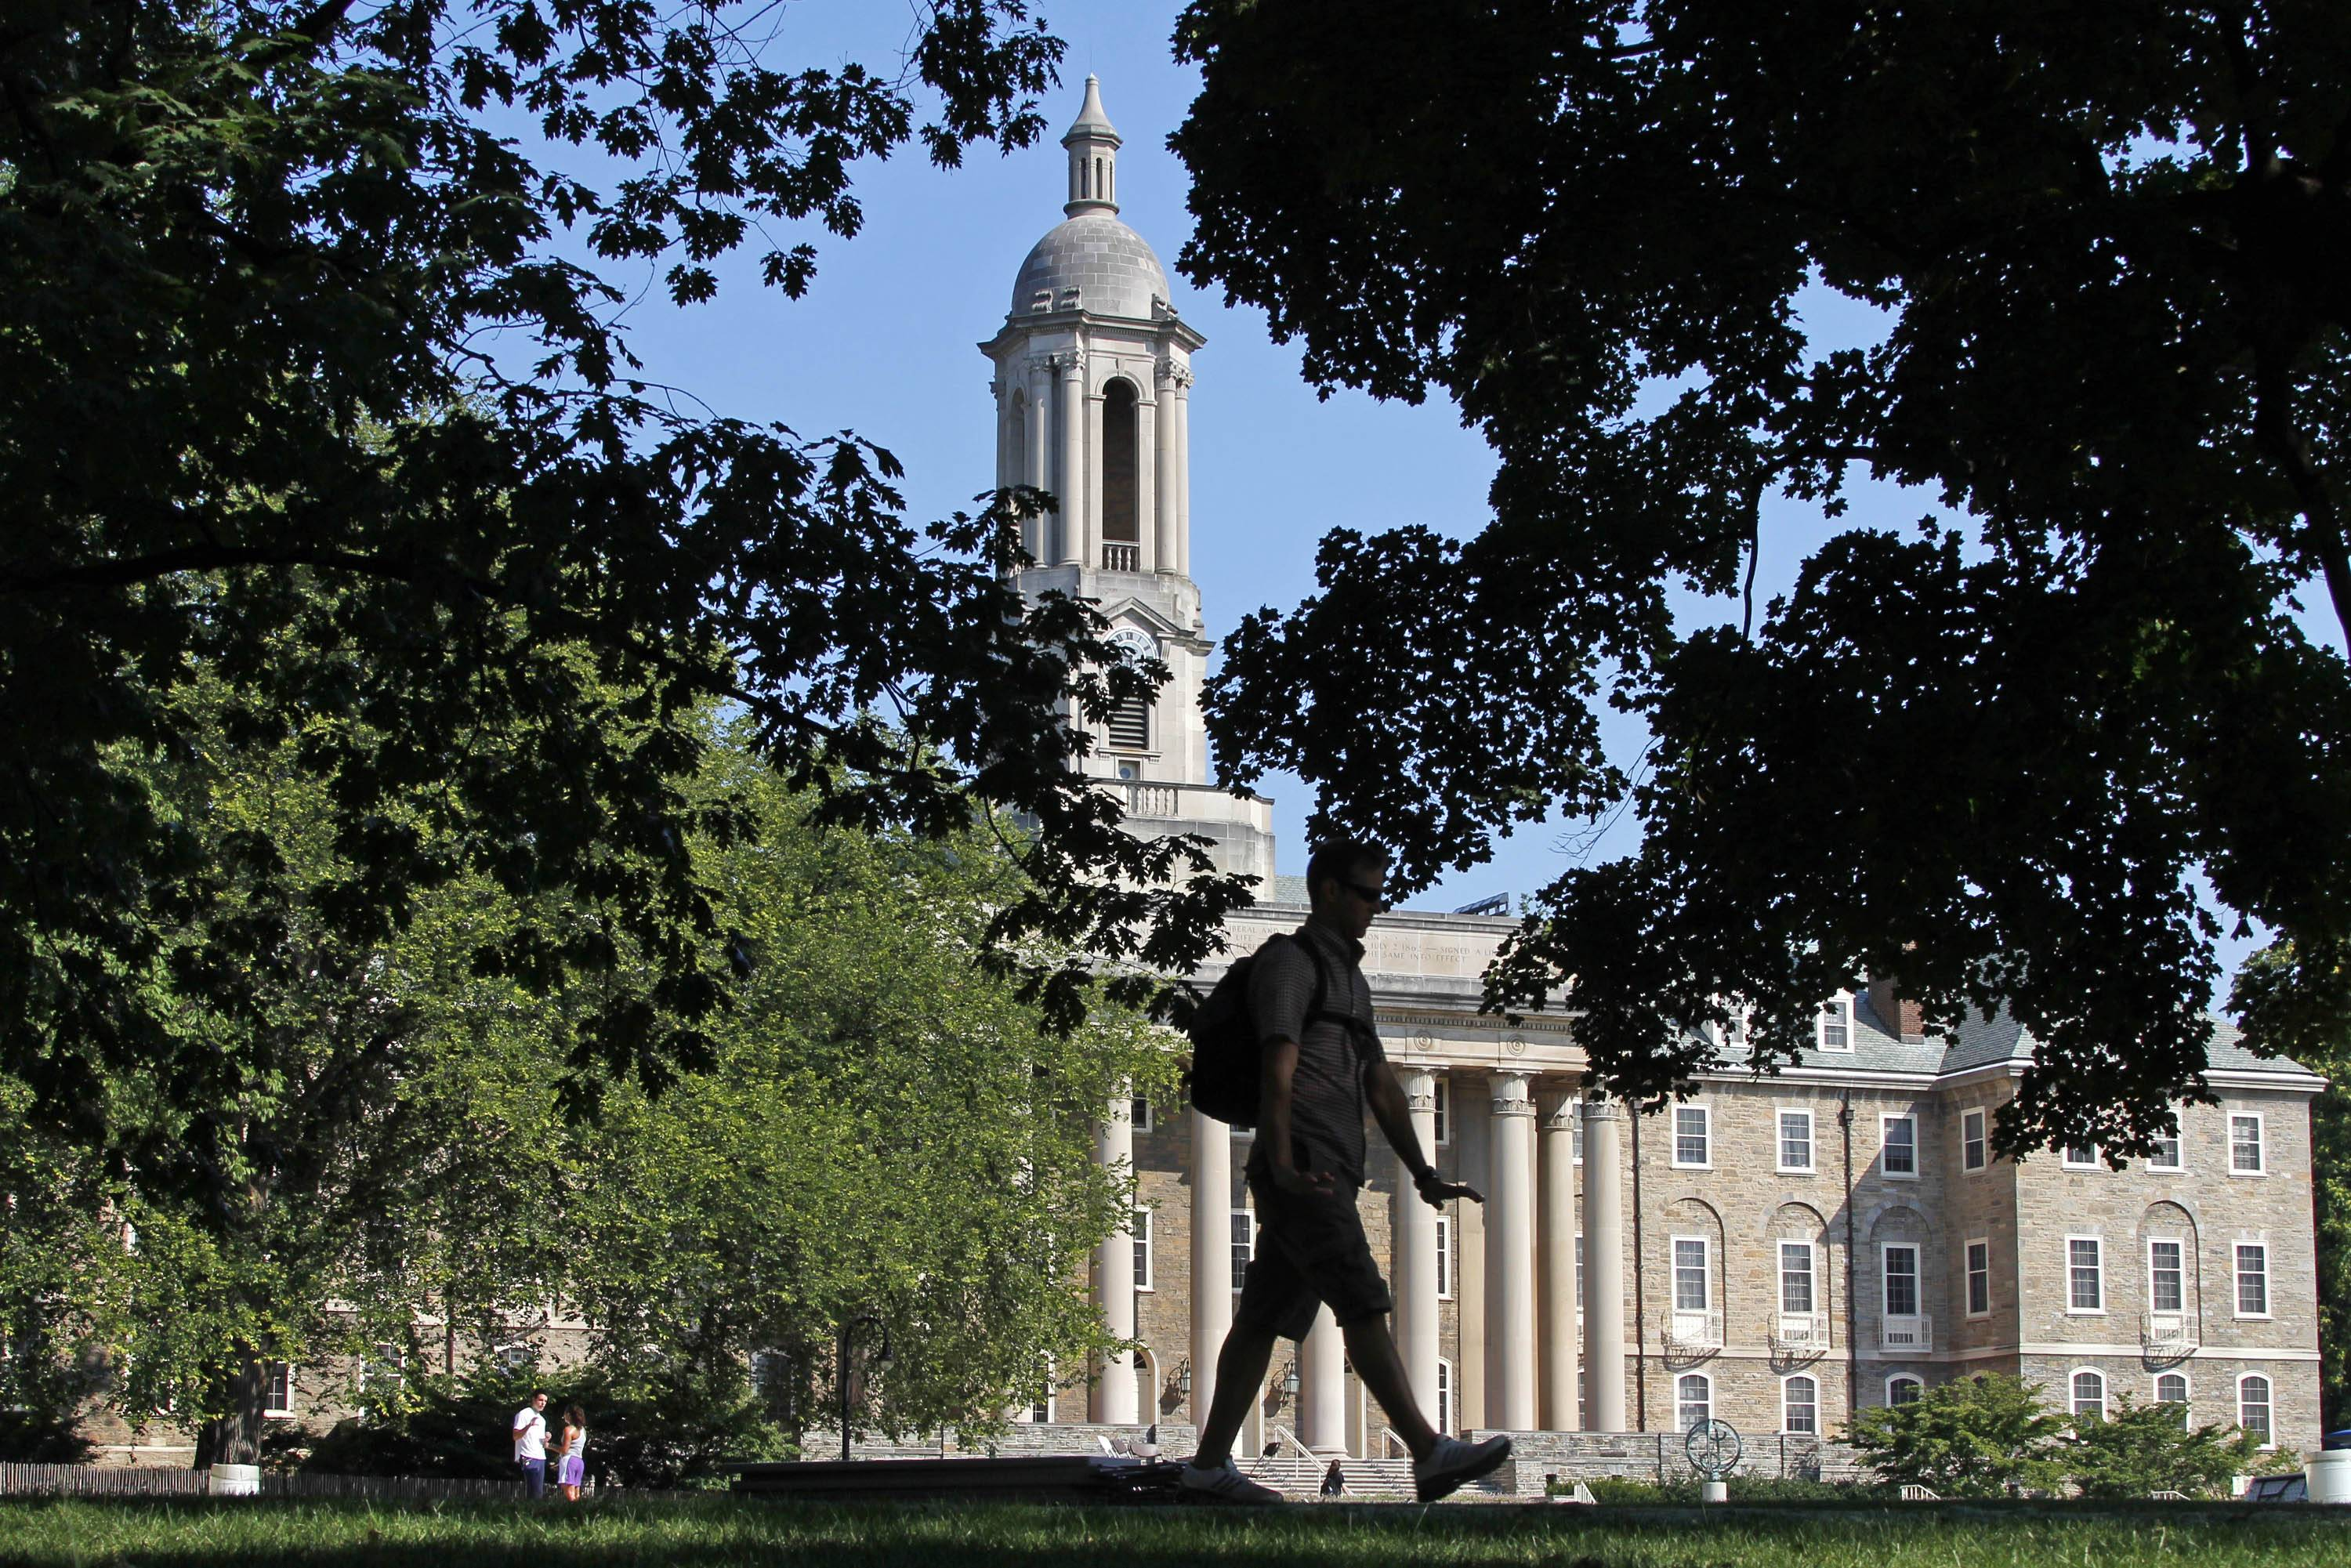 A report released by The Federal Reserve Bank of New York on Tuesday found that a degree is still a good investment for college grads, including those whose jobs don't require college. Seen here, a student walks past Old Main on the campus of Penn State University in State College, Pa.